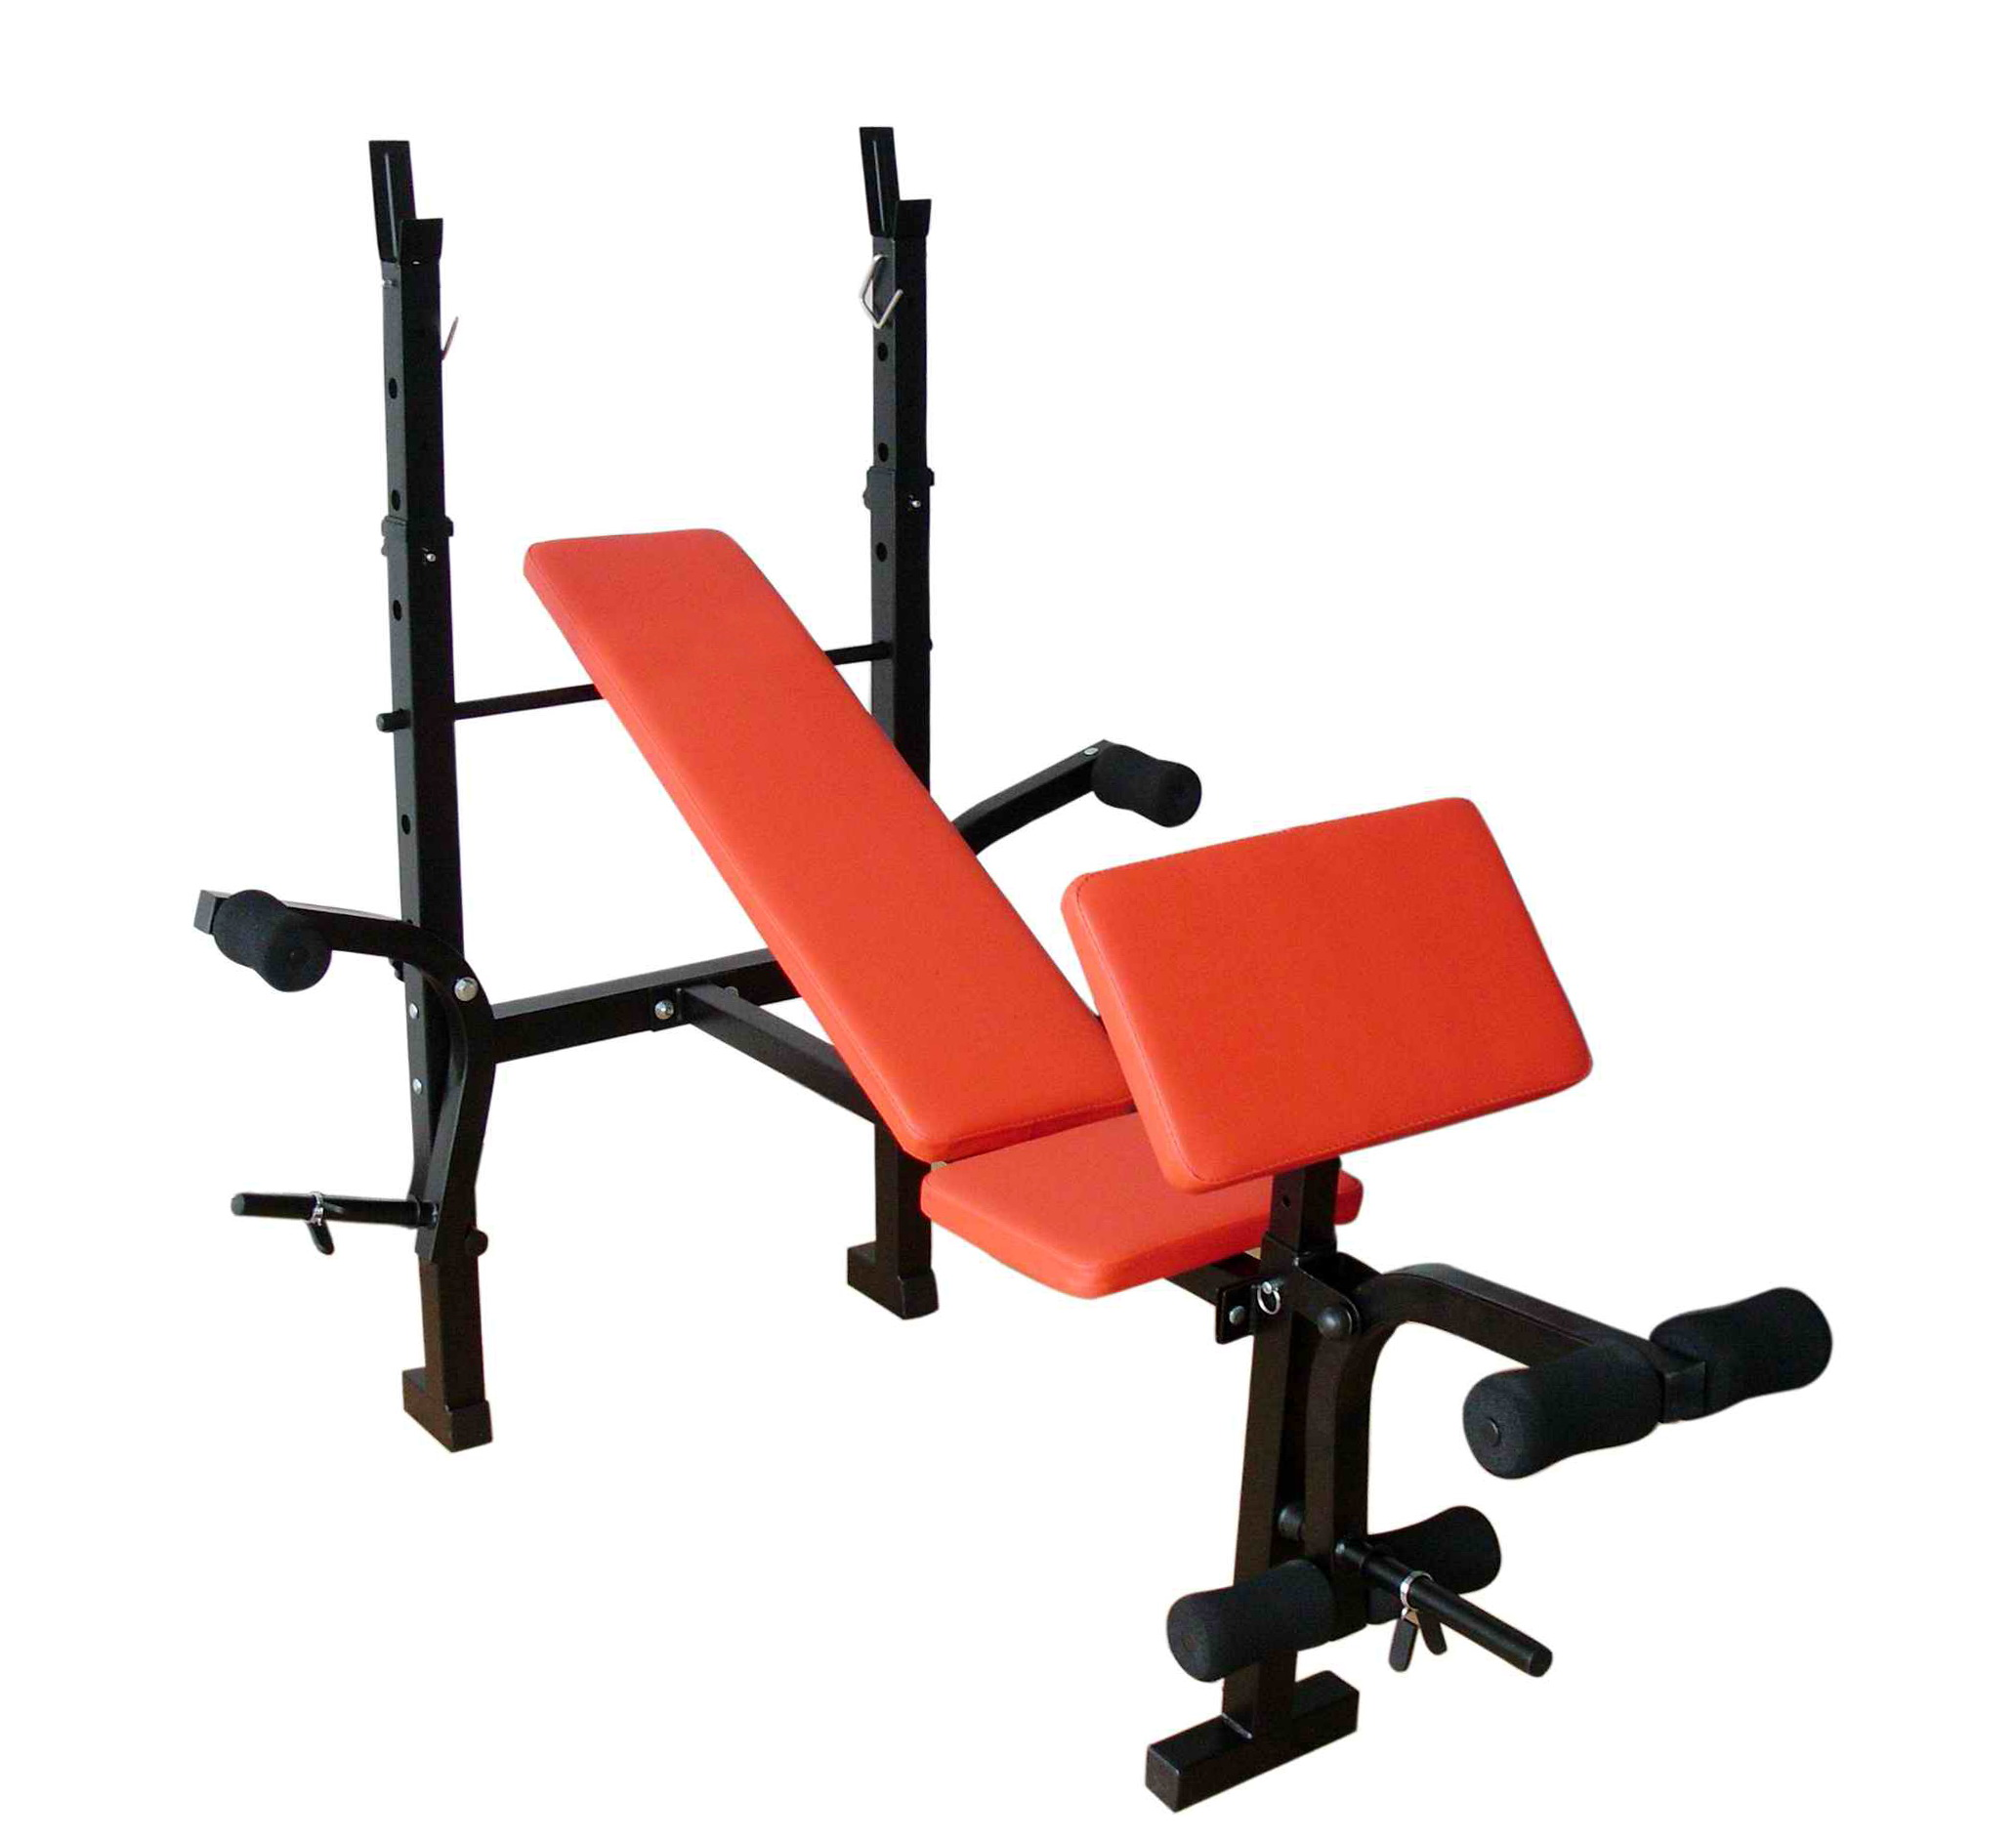 Bench Press Machine Dimensions